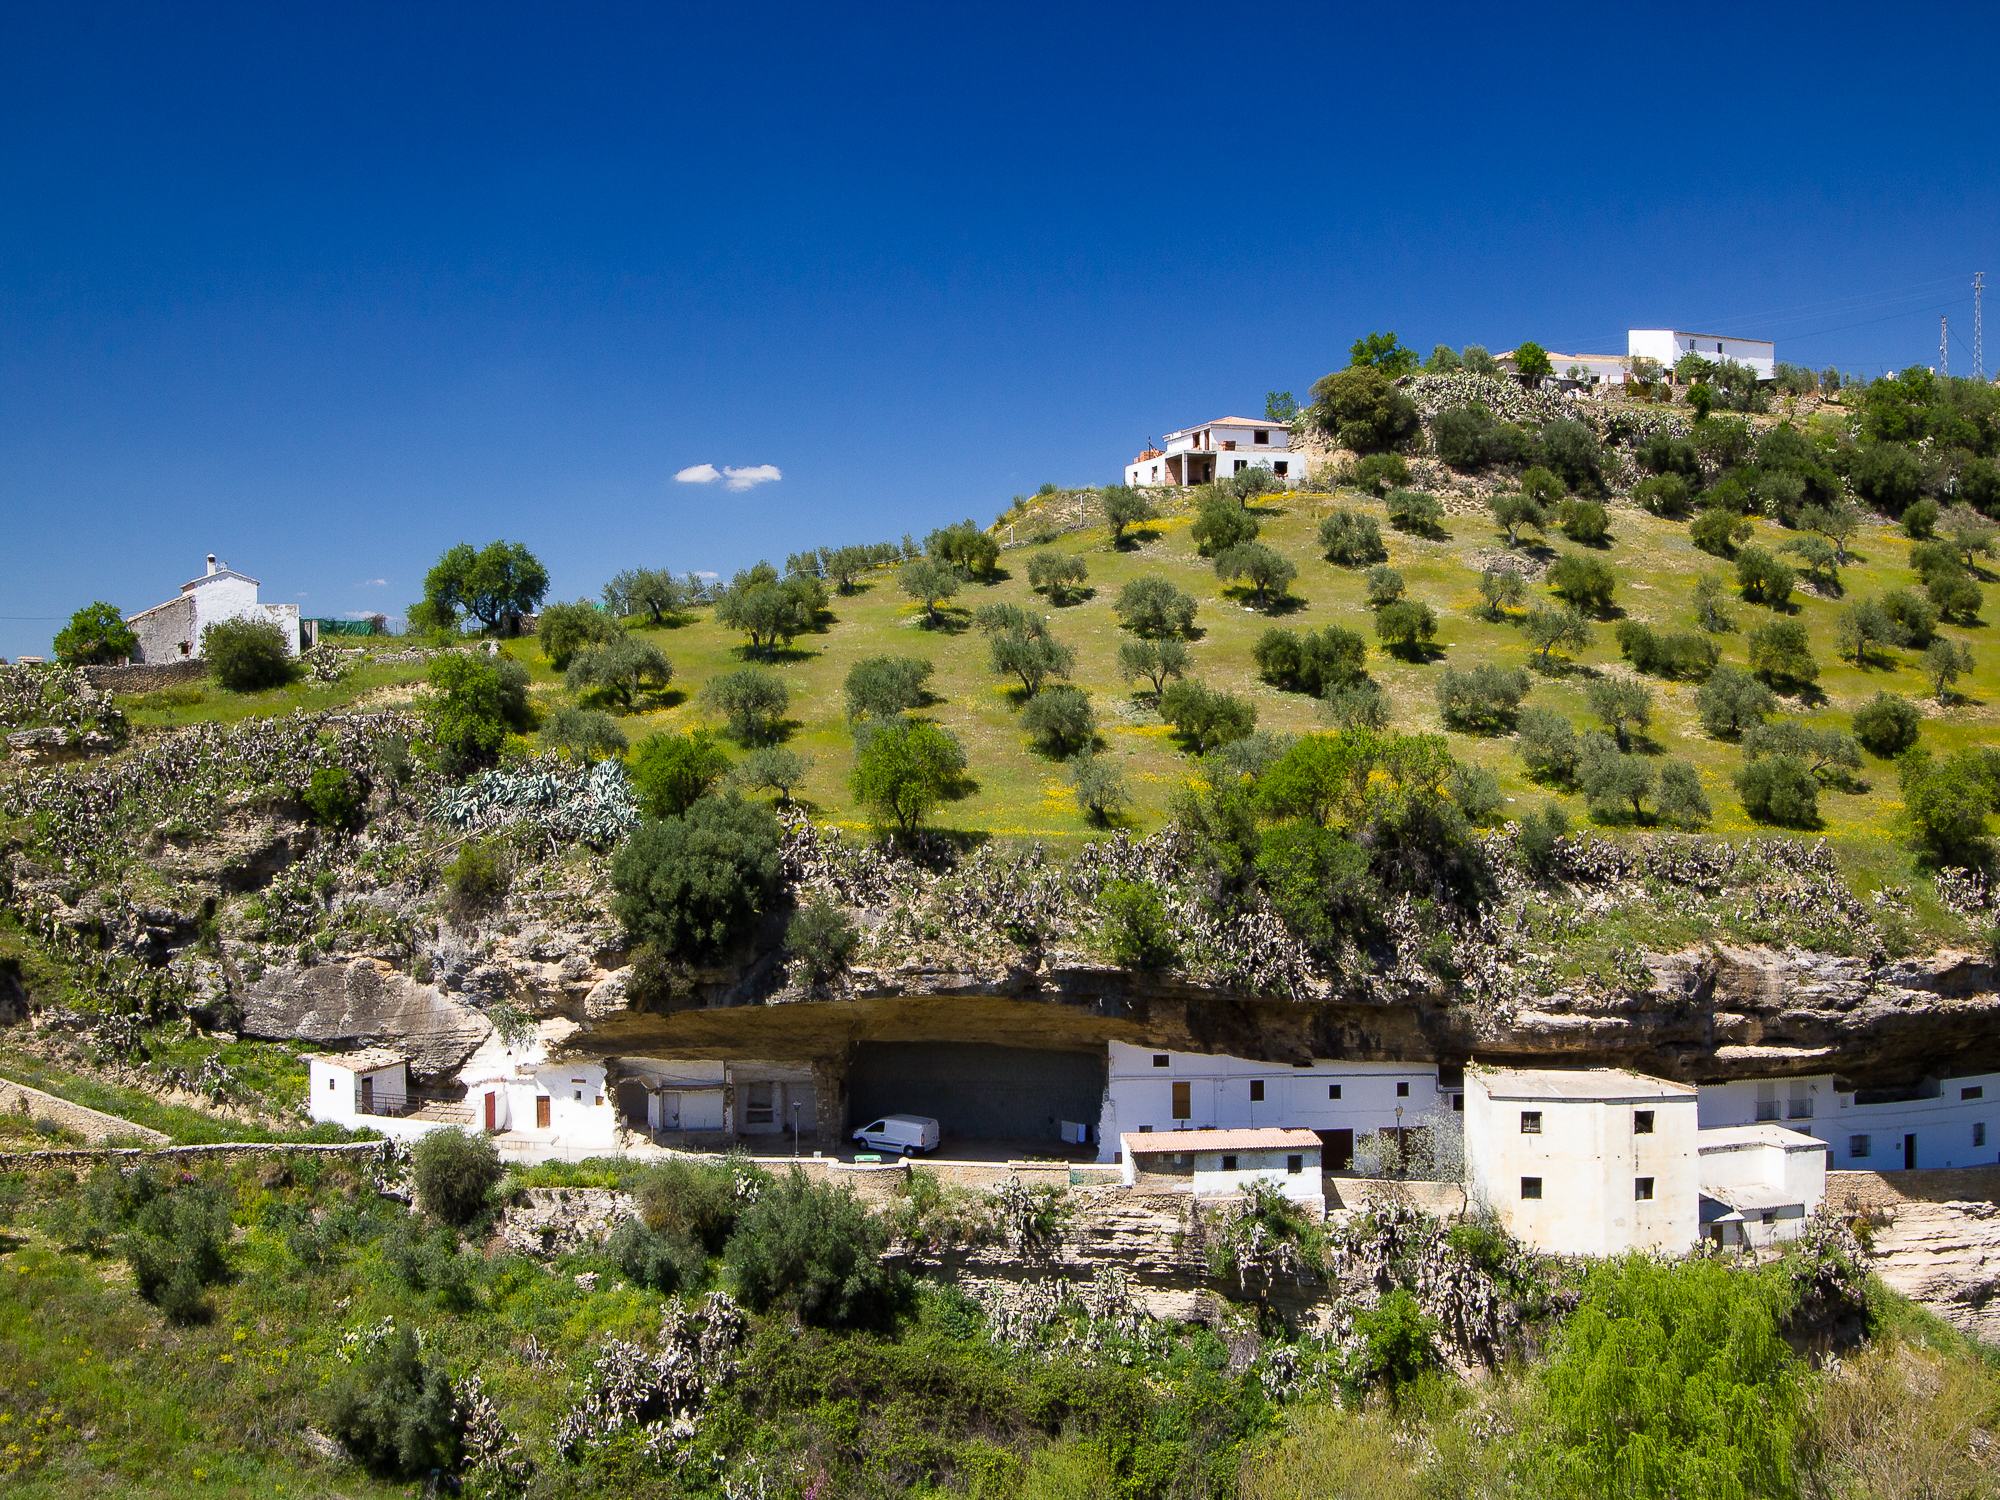 Houses, tucked into the rock and landscape at Setenil de las Bodegas